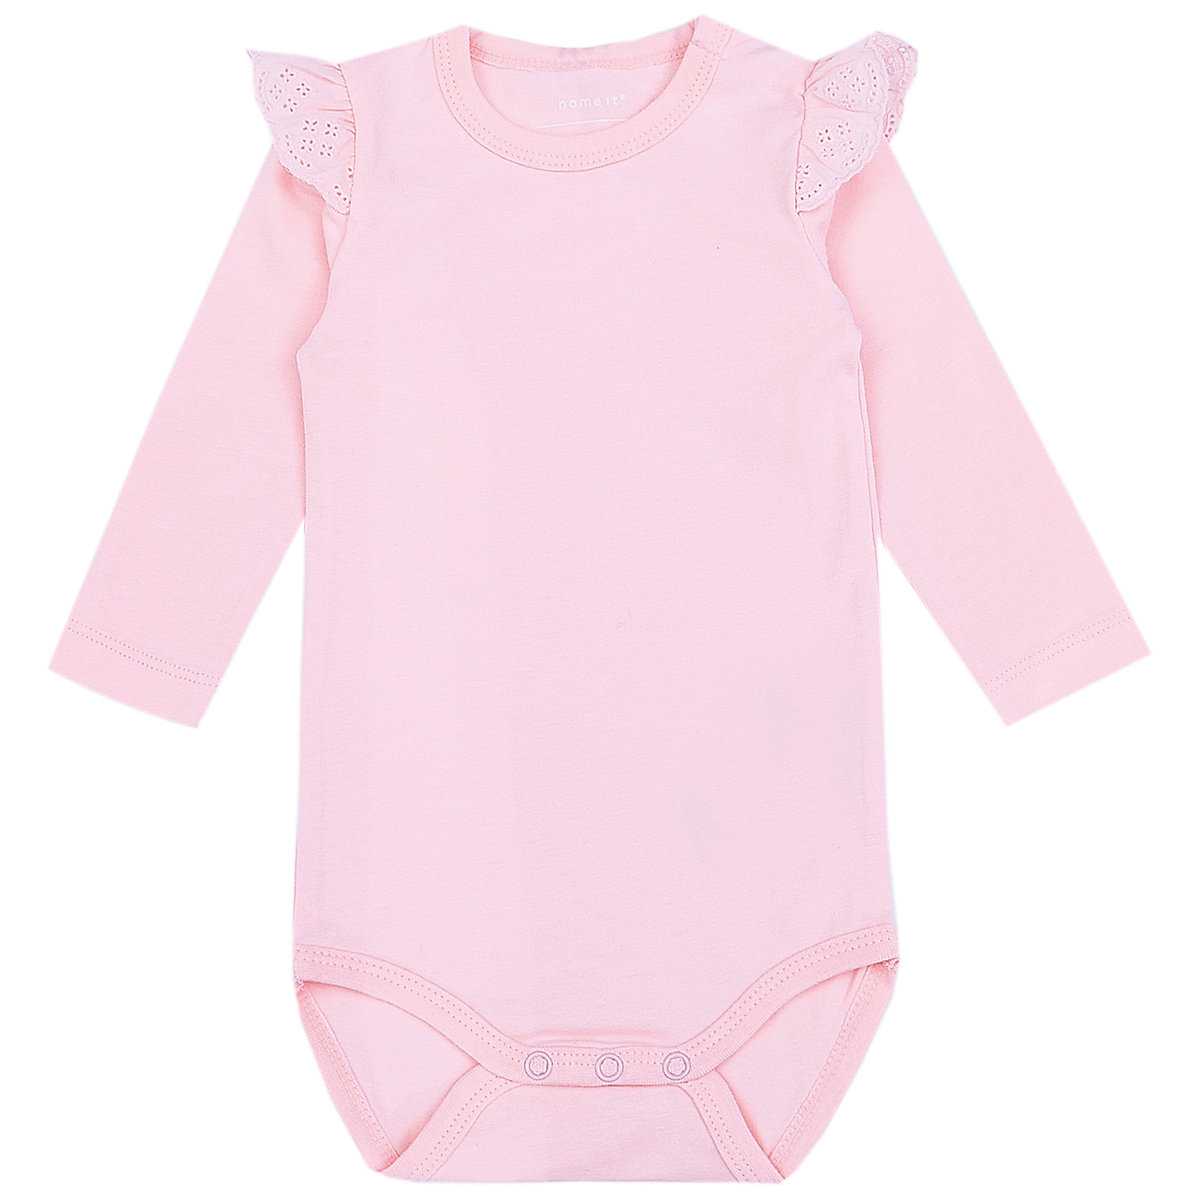 NAME IT Bodysuits 10624815 Baby Clothing Bodysuit For Boys And Girls